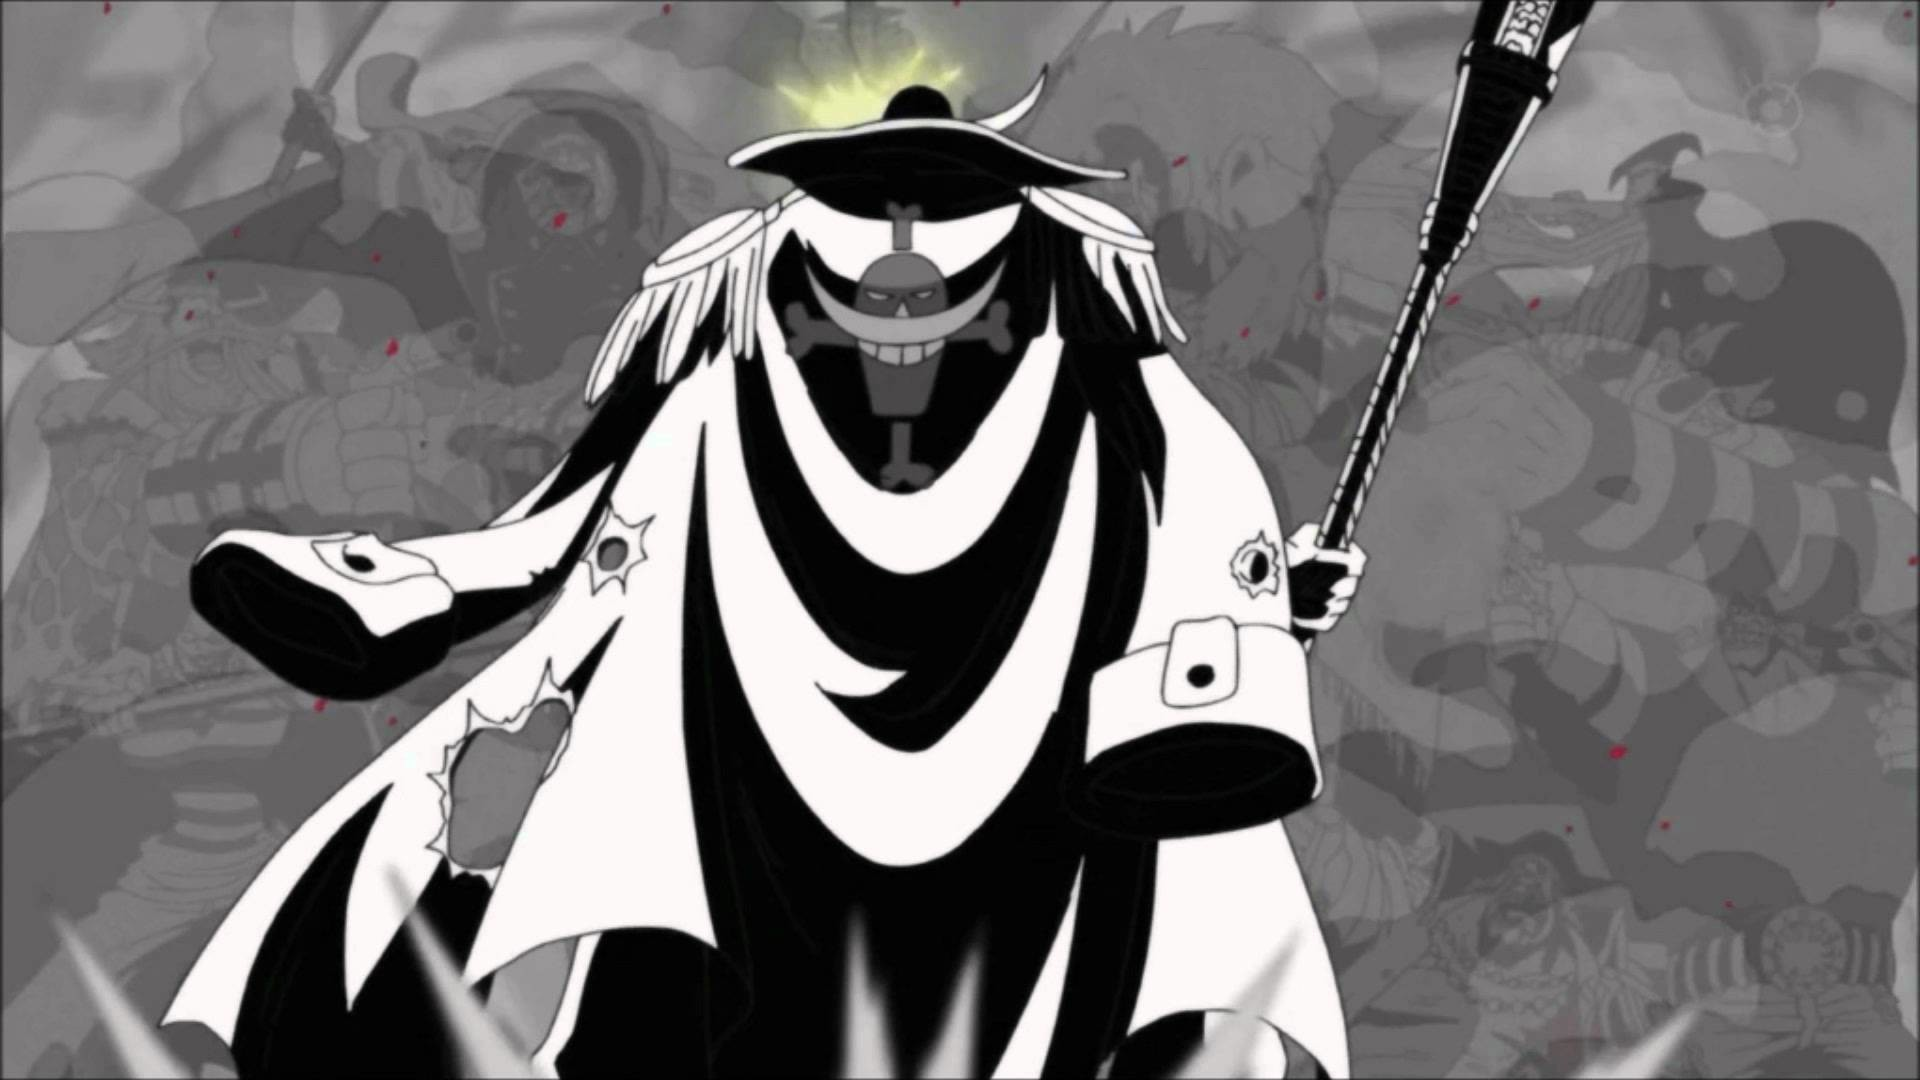 1920x1080 32 Mind Blowing White Beard One Piece Wallpaper Hd